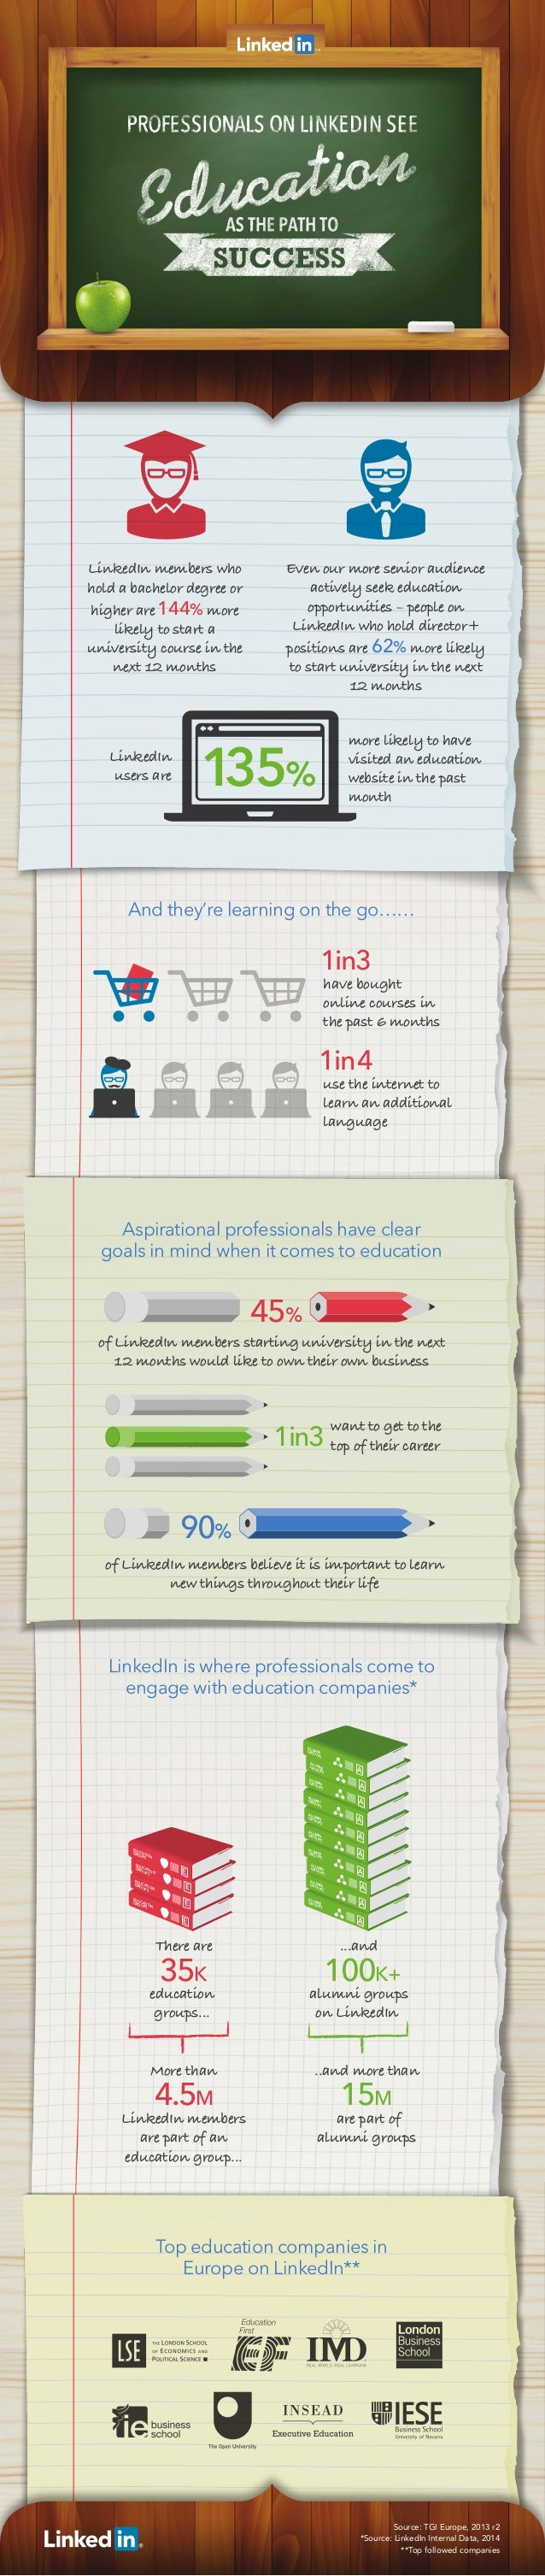 Education - LinkedIn Infographic 2014